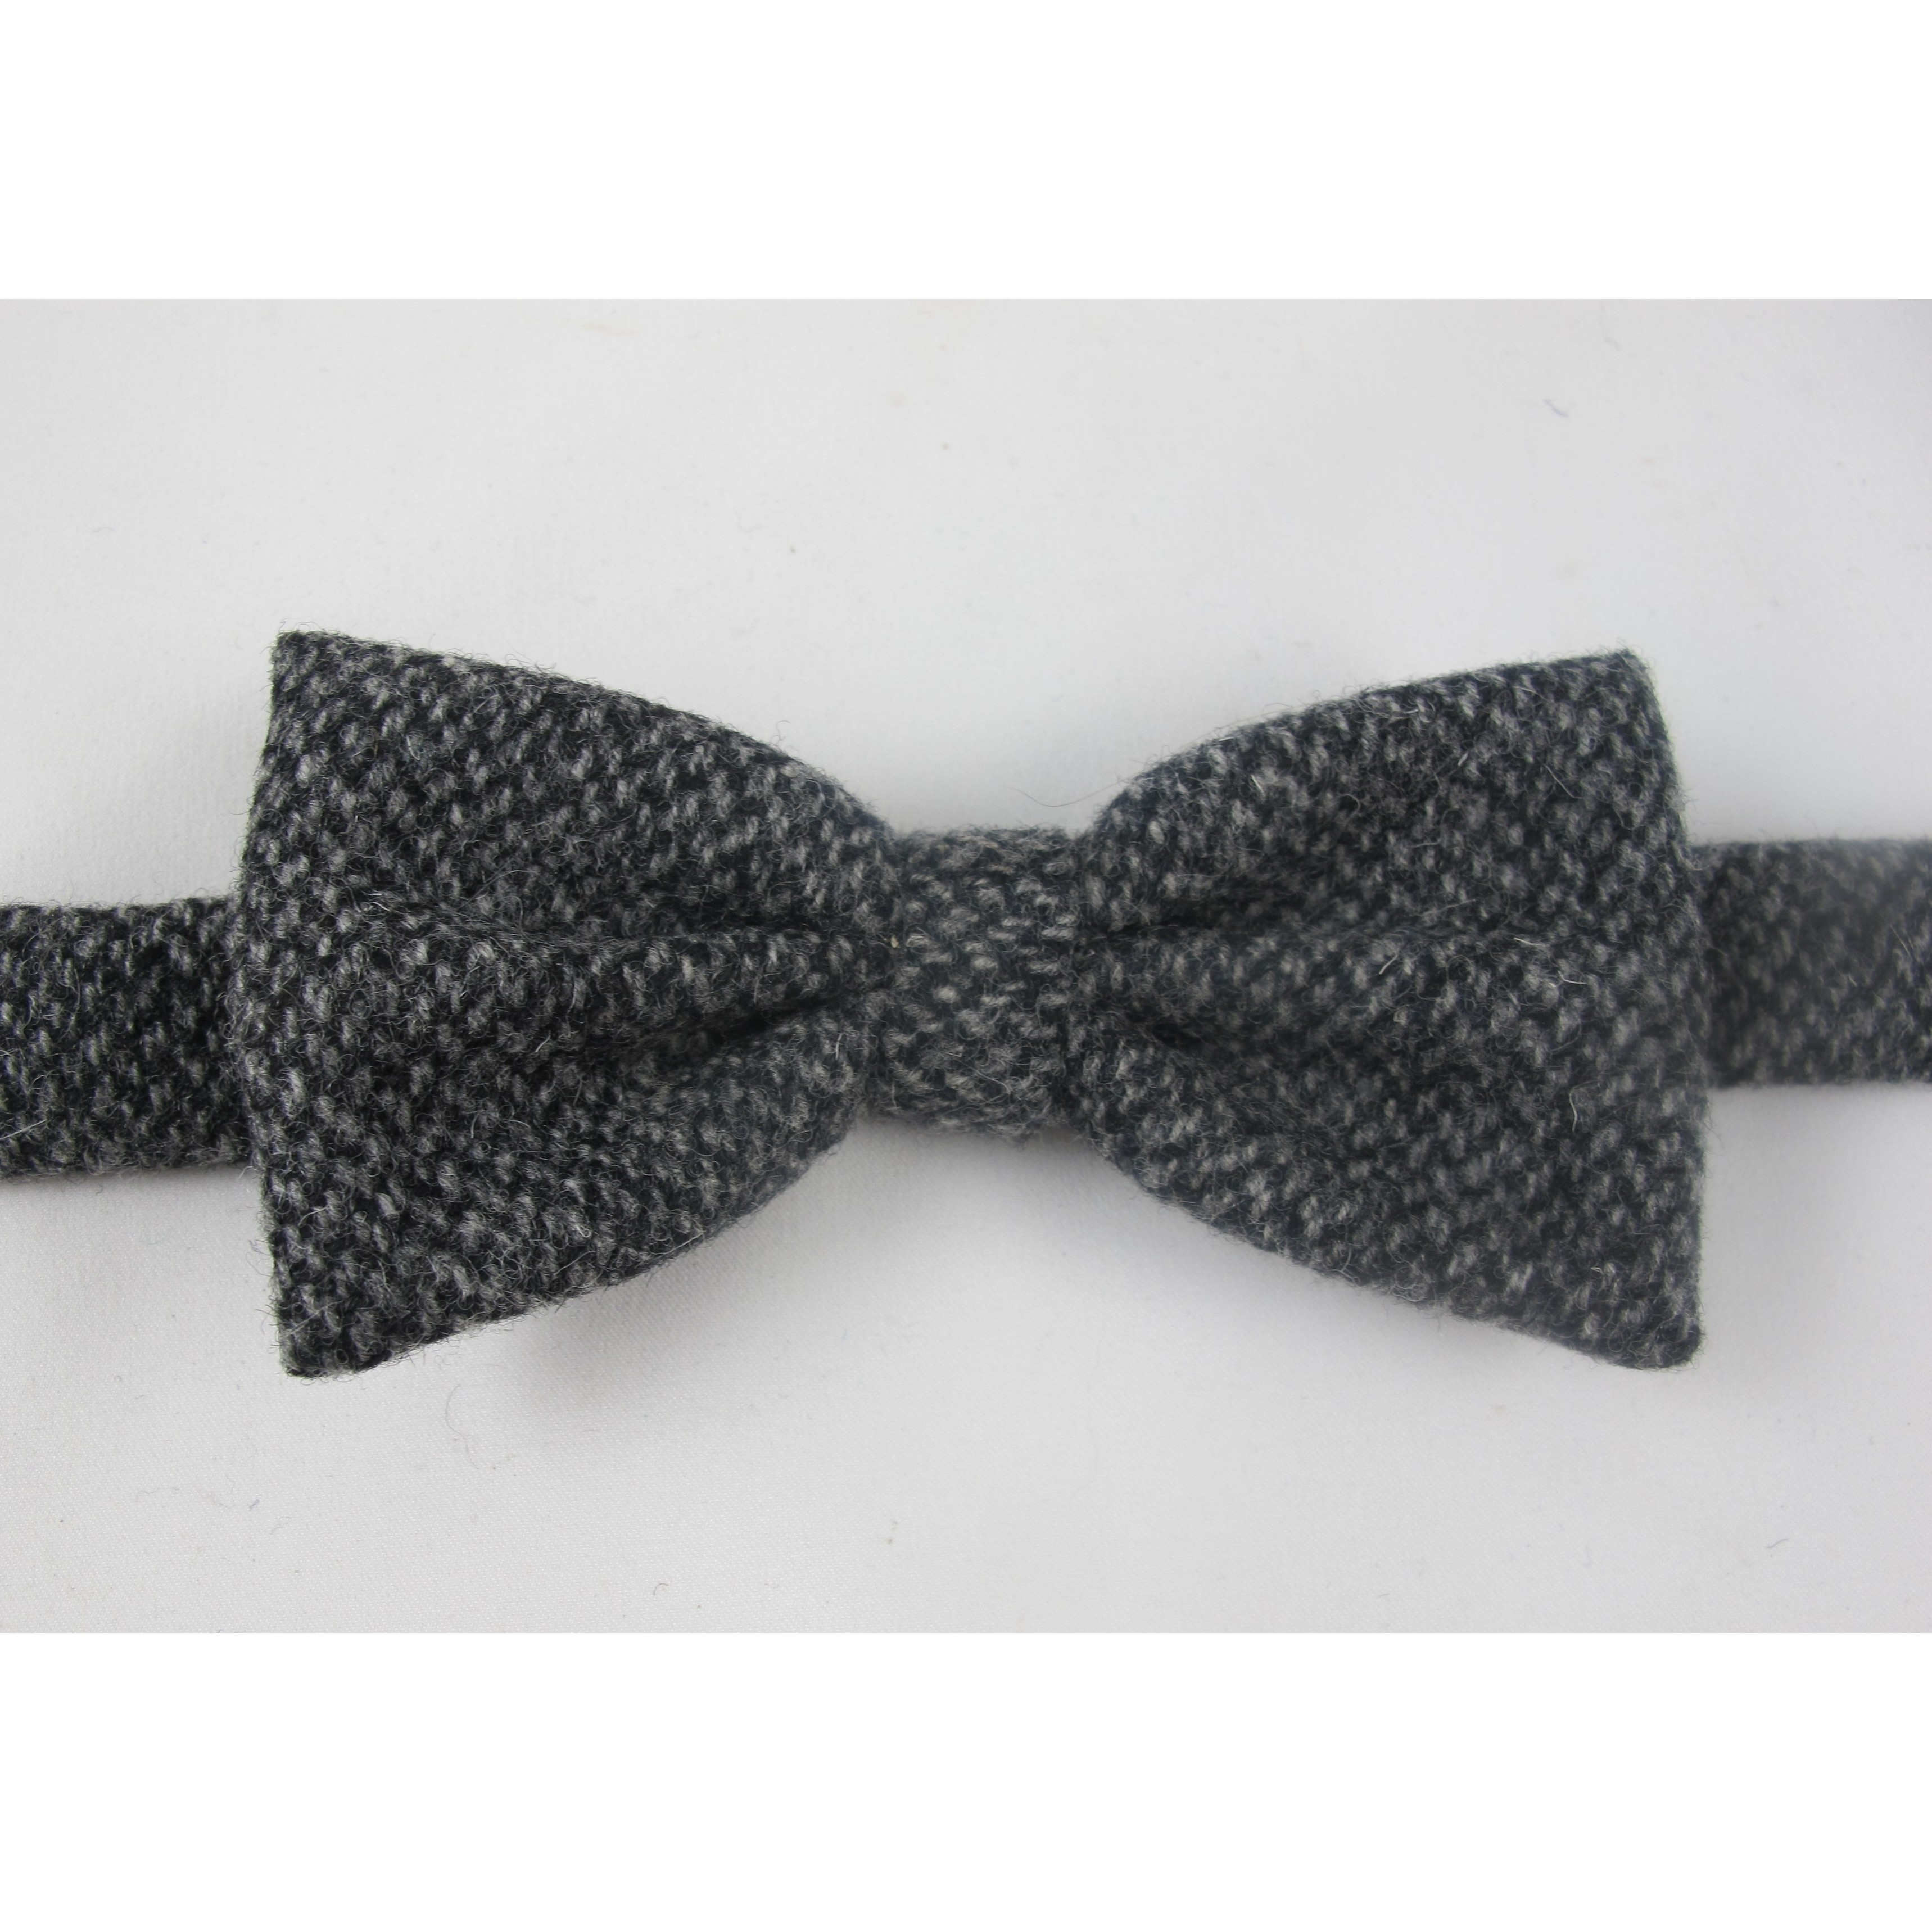 Black and White Tweed Bow Tie